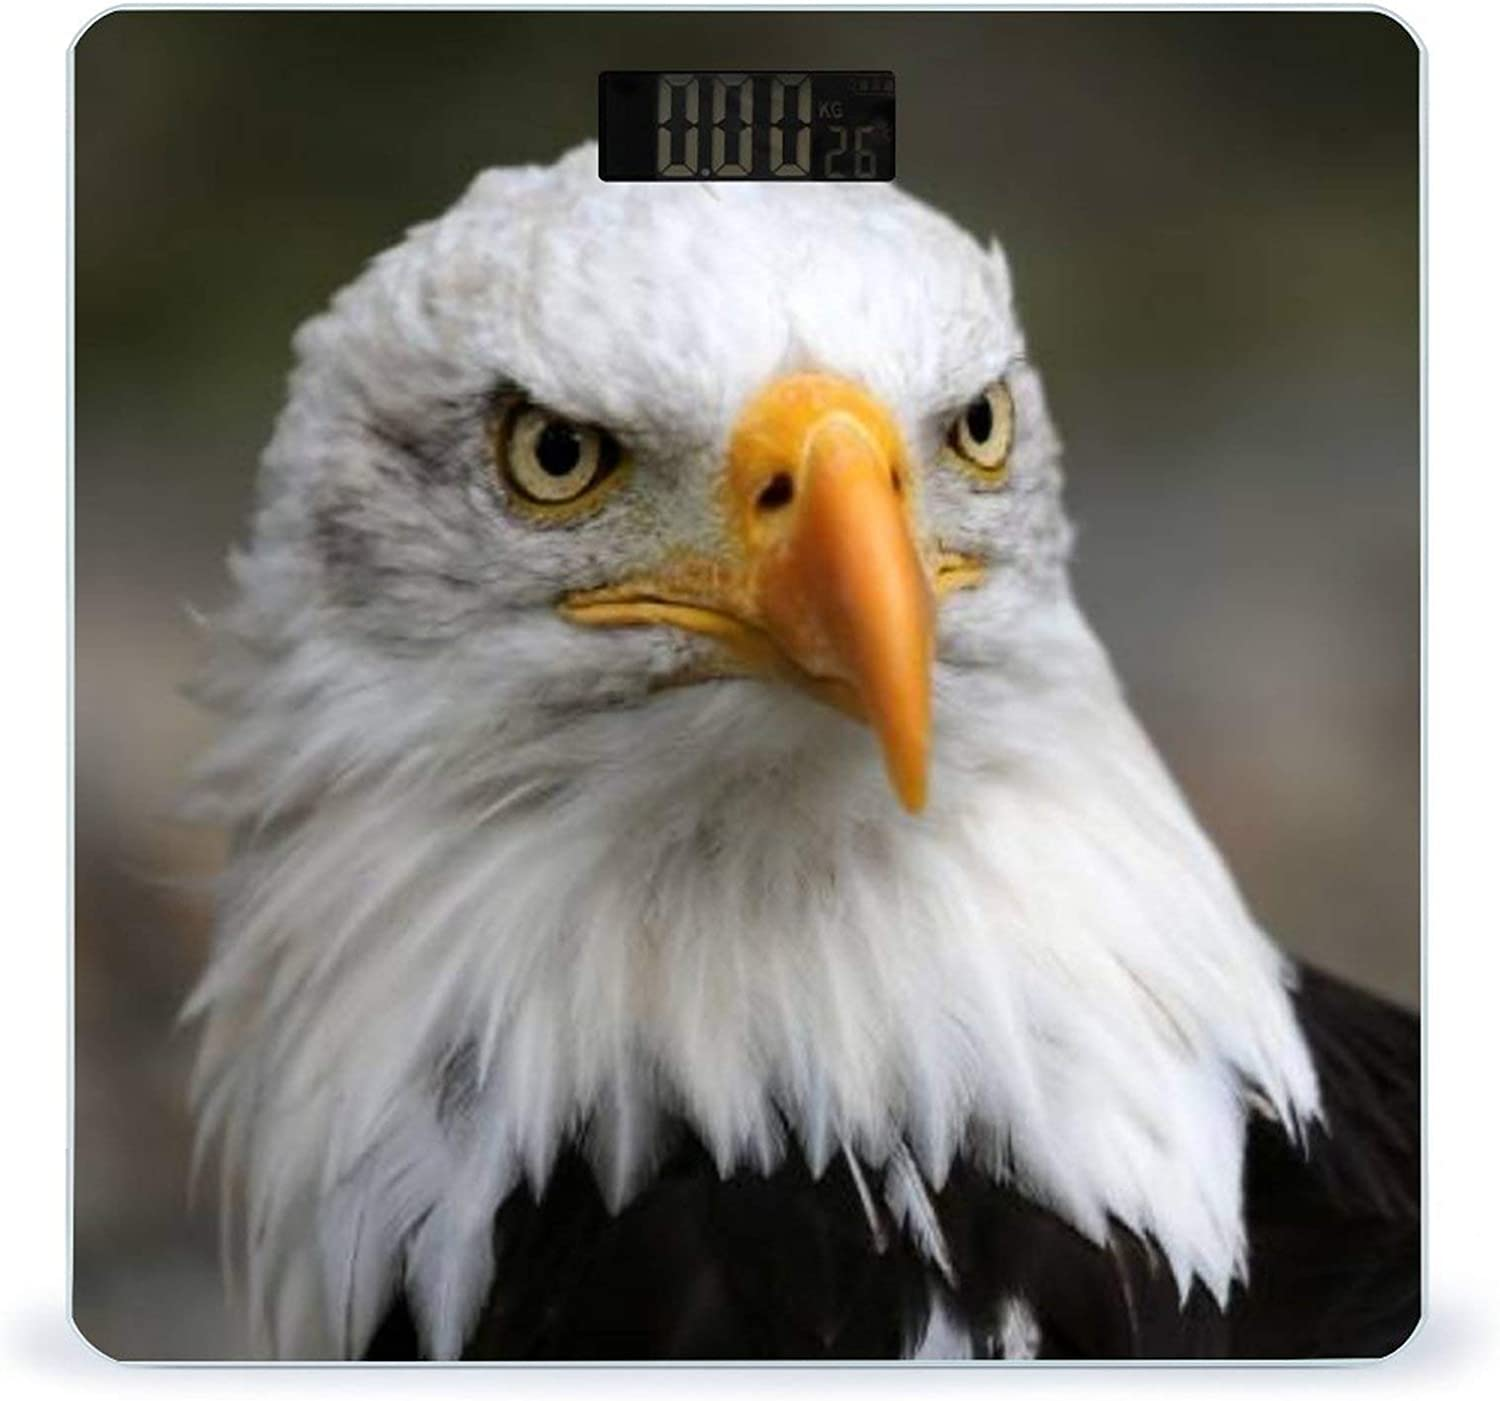 CHUFZSD American Popular overseas Bald Eagle 1 Highly Fitness Accurate Smart Detroit Mall Sc